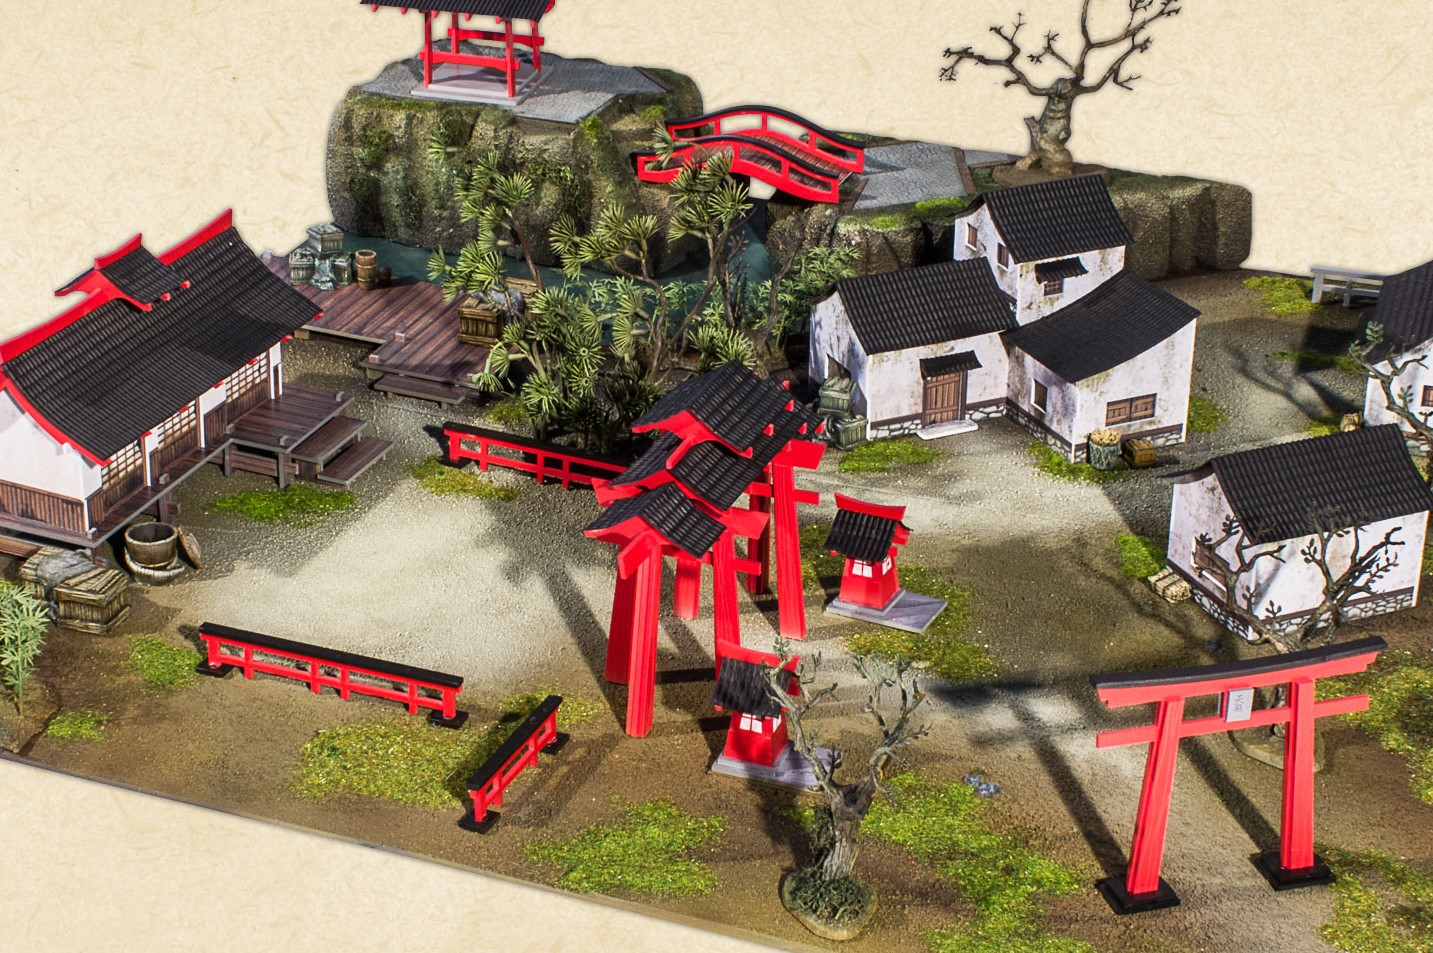 Plast Craft Head To Feudal Japan With Next Color Ed Range Ontabletop Home Of Beasts Of War